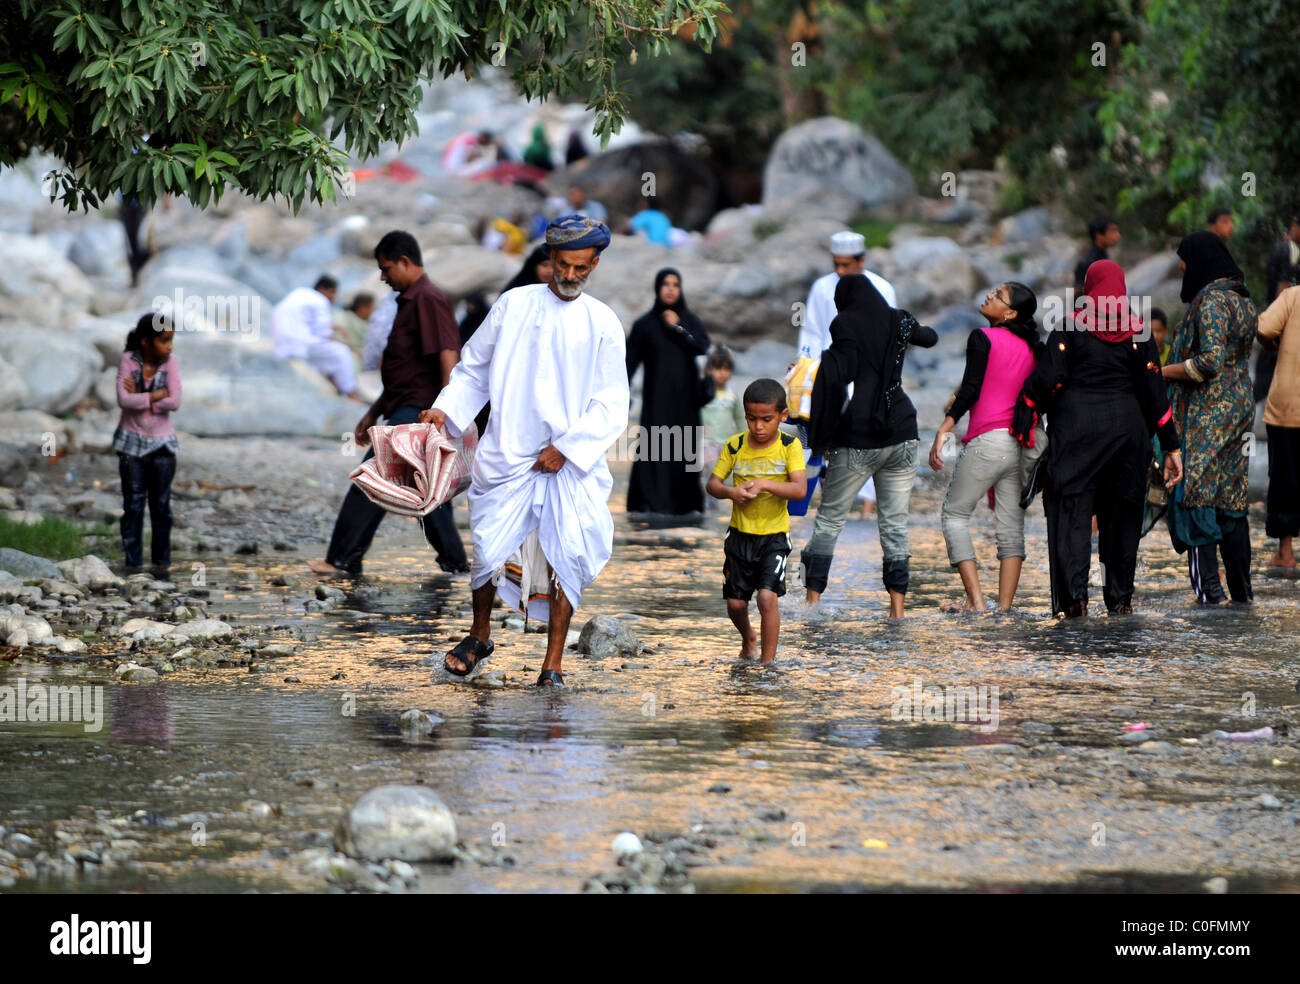 Families paddling in the hot spring water at Nakhal. The Sultanate of Oman. - Stock Image